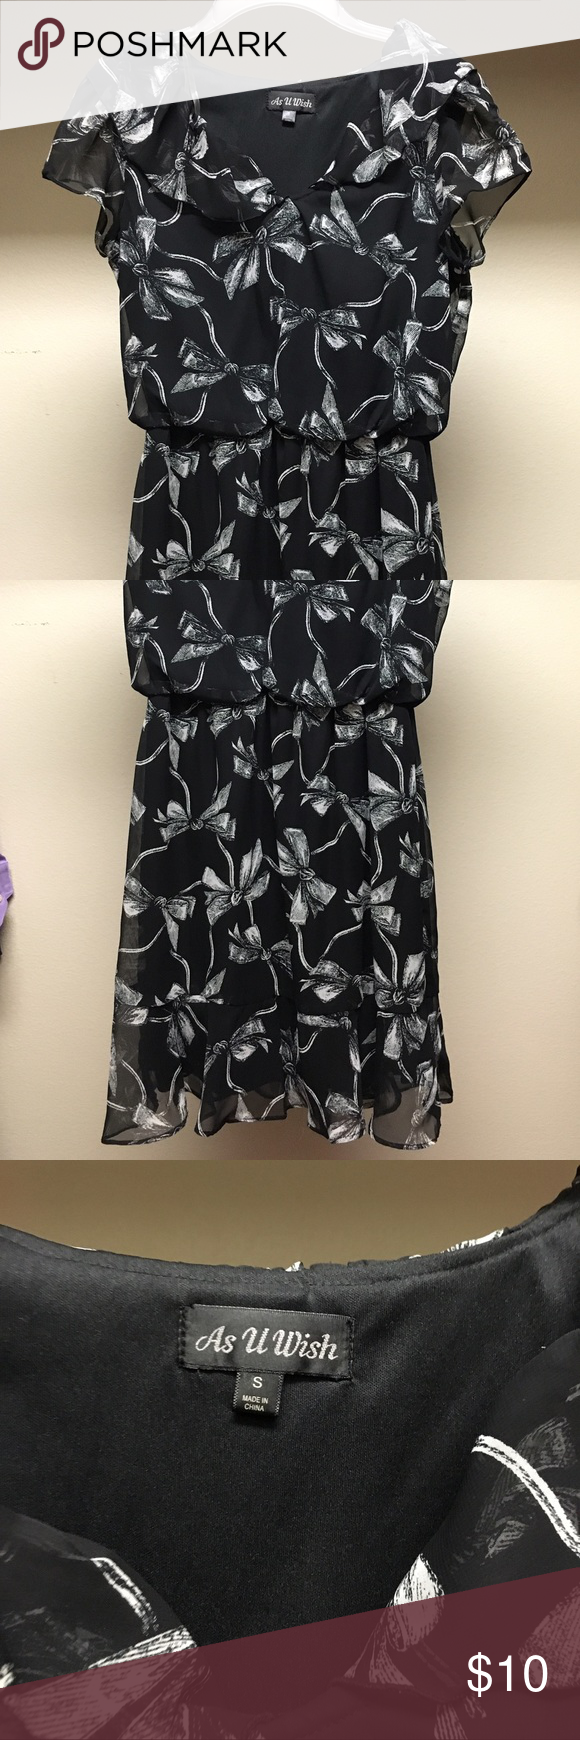 Like New Bow tie Dress small Like New Black Bow tie Dress size small. Super comfy and very flattering! Dresses Midi